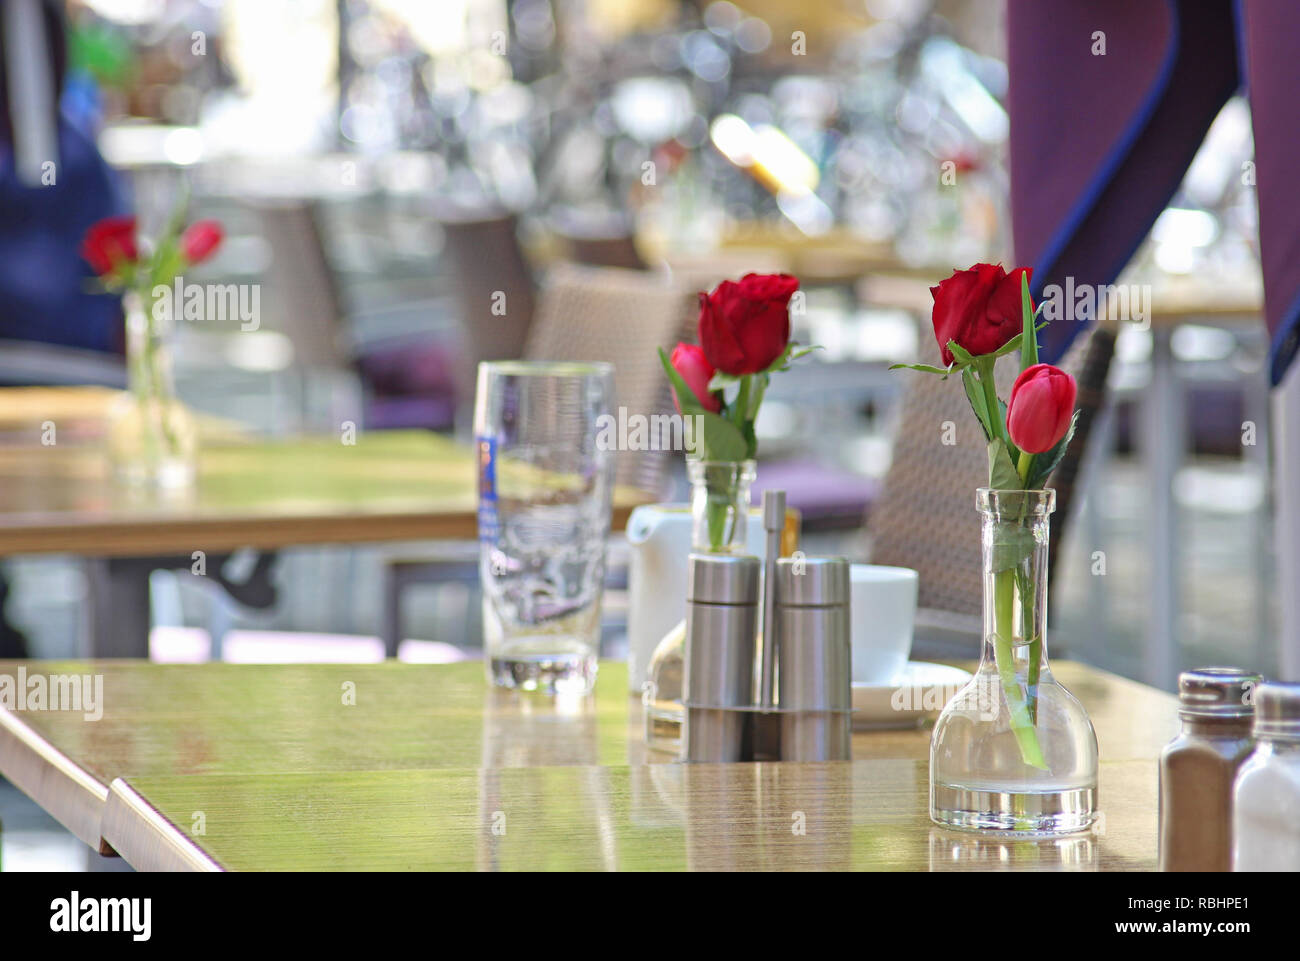 street cafe, in springtime, with red tulips on the tables - Stock Image